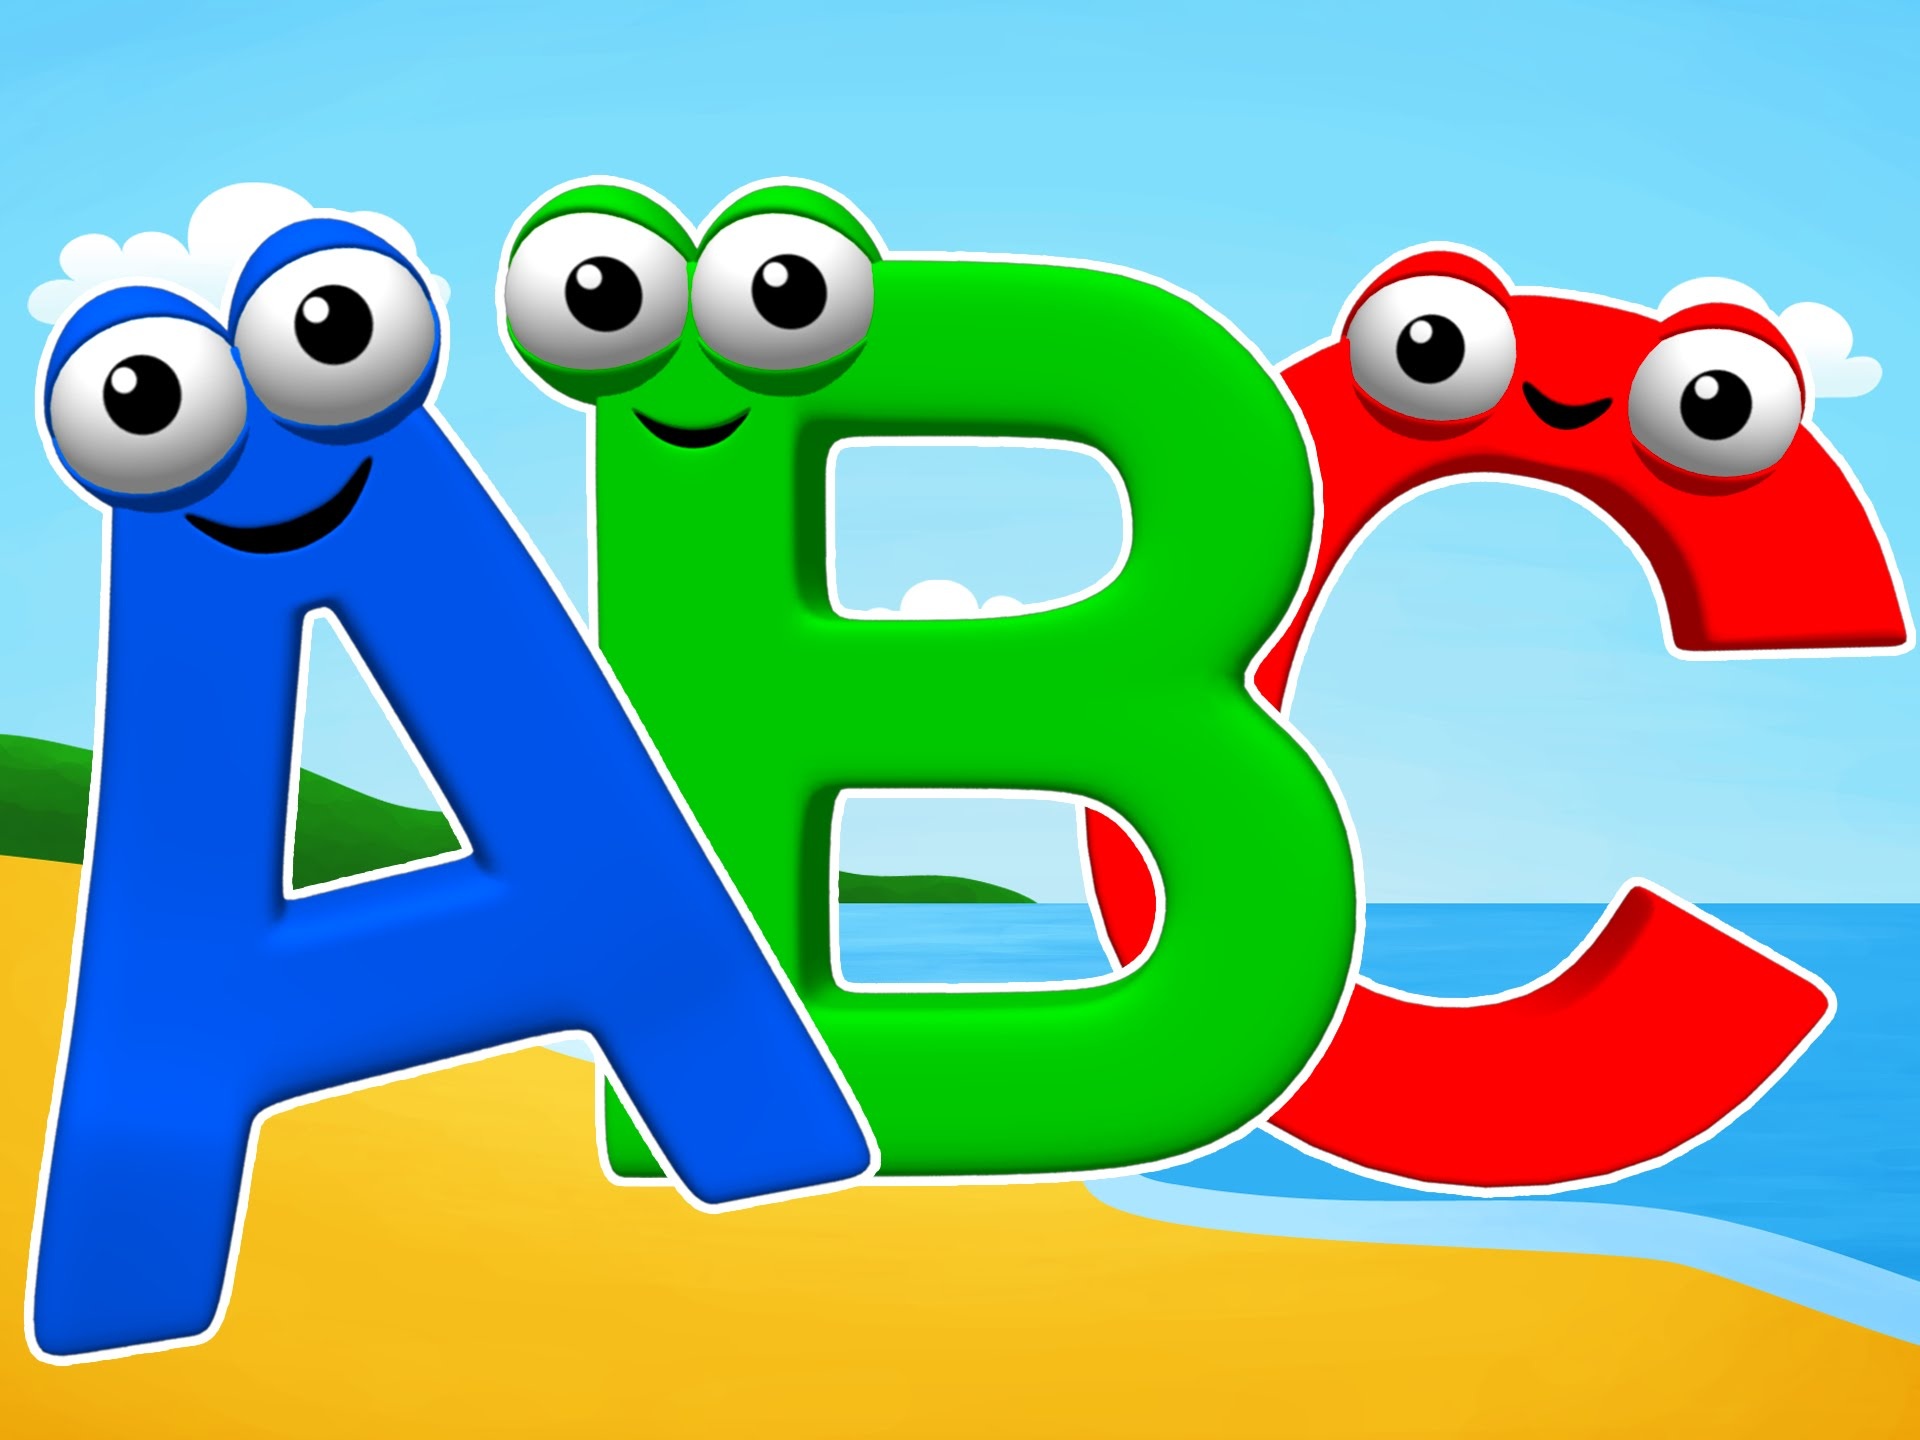 Abc clipart abcd, Abc abcd Transparent FREE for download on.